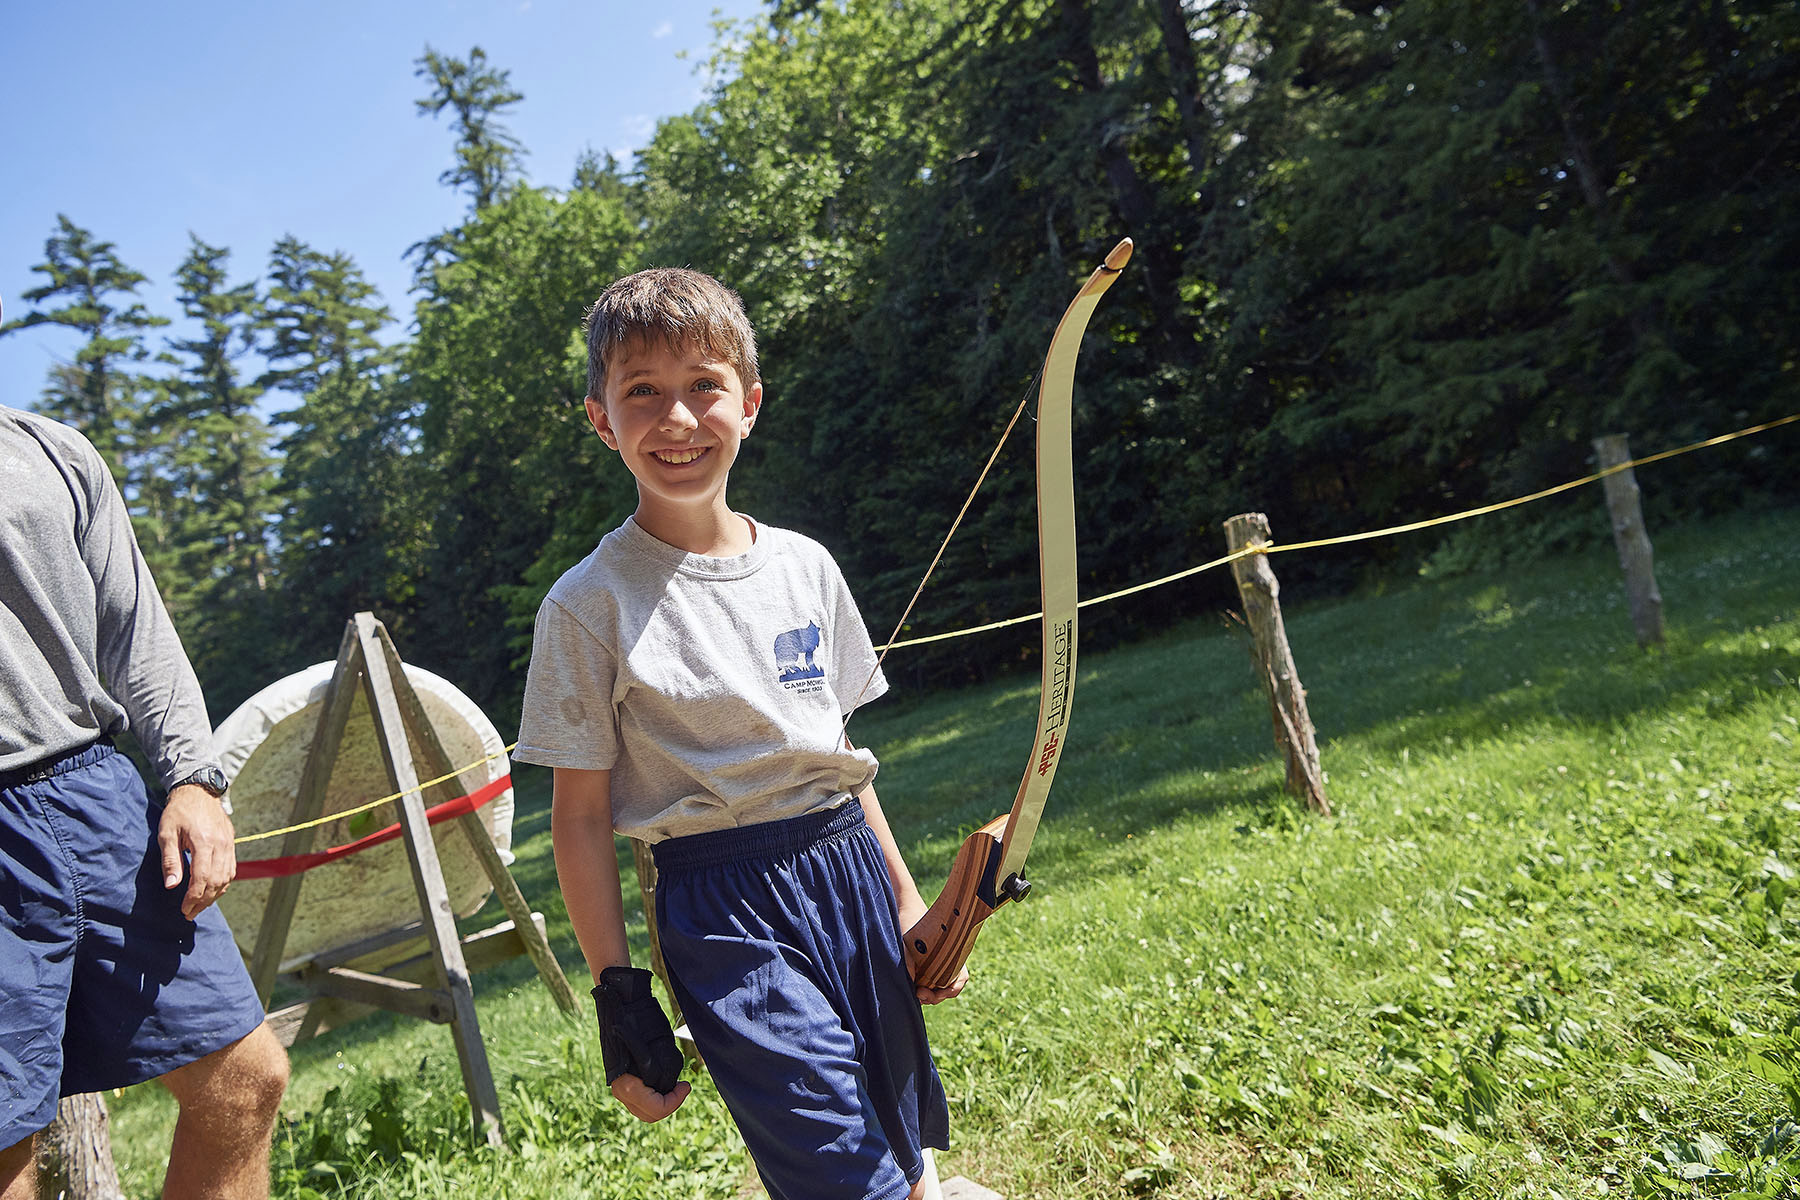 Archery at Camp Mowglis, a New Hampshire Boys Summer Camp